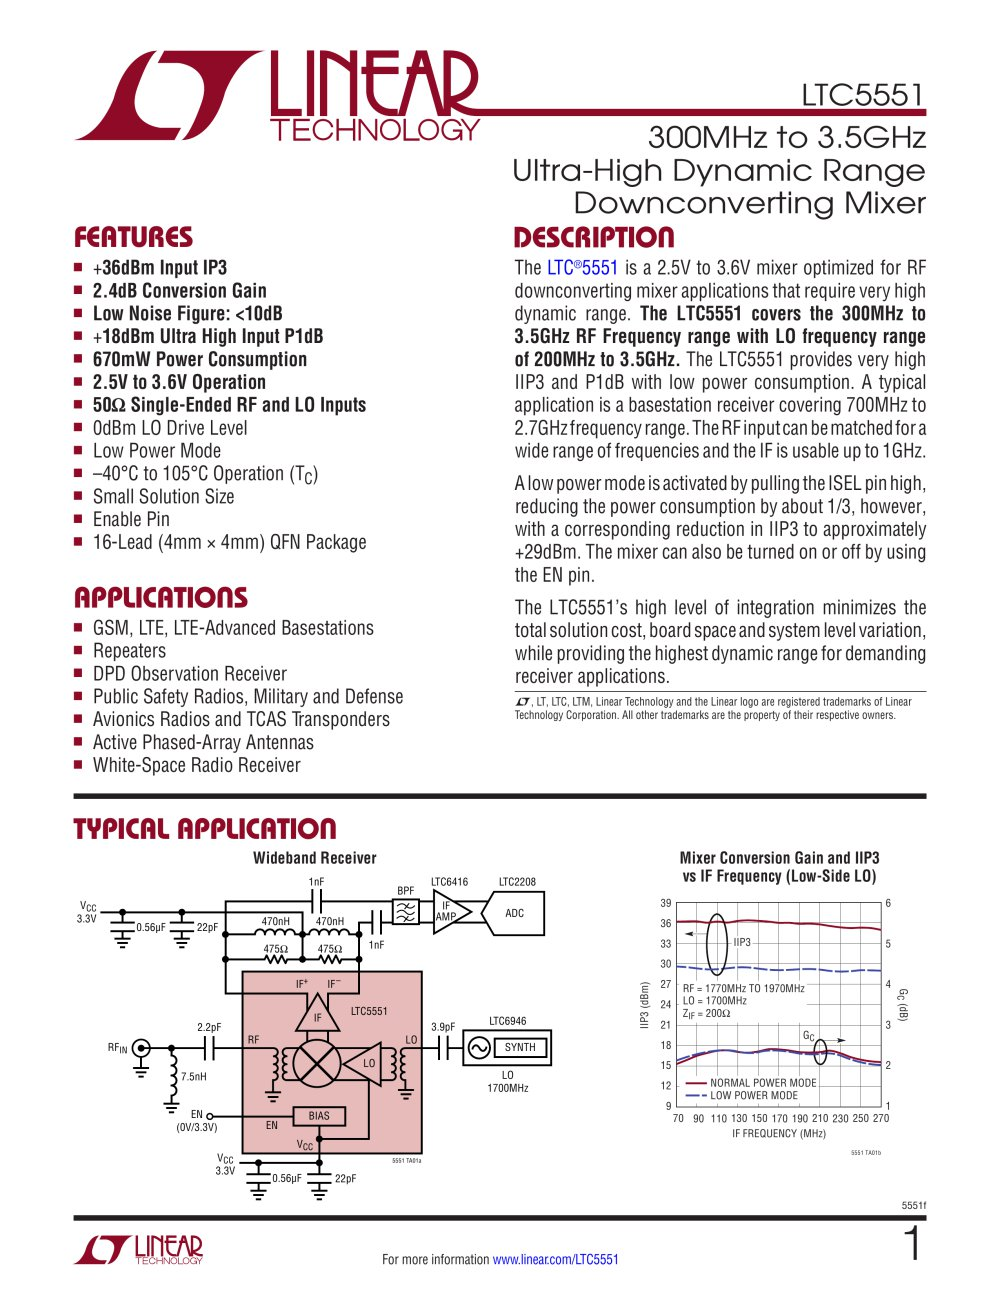 Ltc5551 300mhz To 35ghz Ultra High Dynamic Range Downconverting Synchronous Buckboost Led Driver Controller Linear Technology Mixer 1 24 Pages